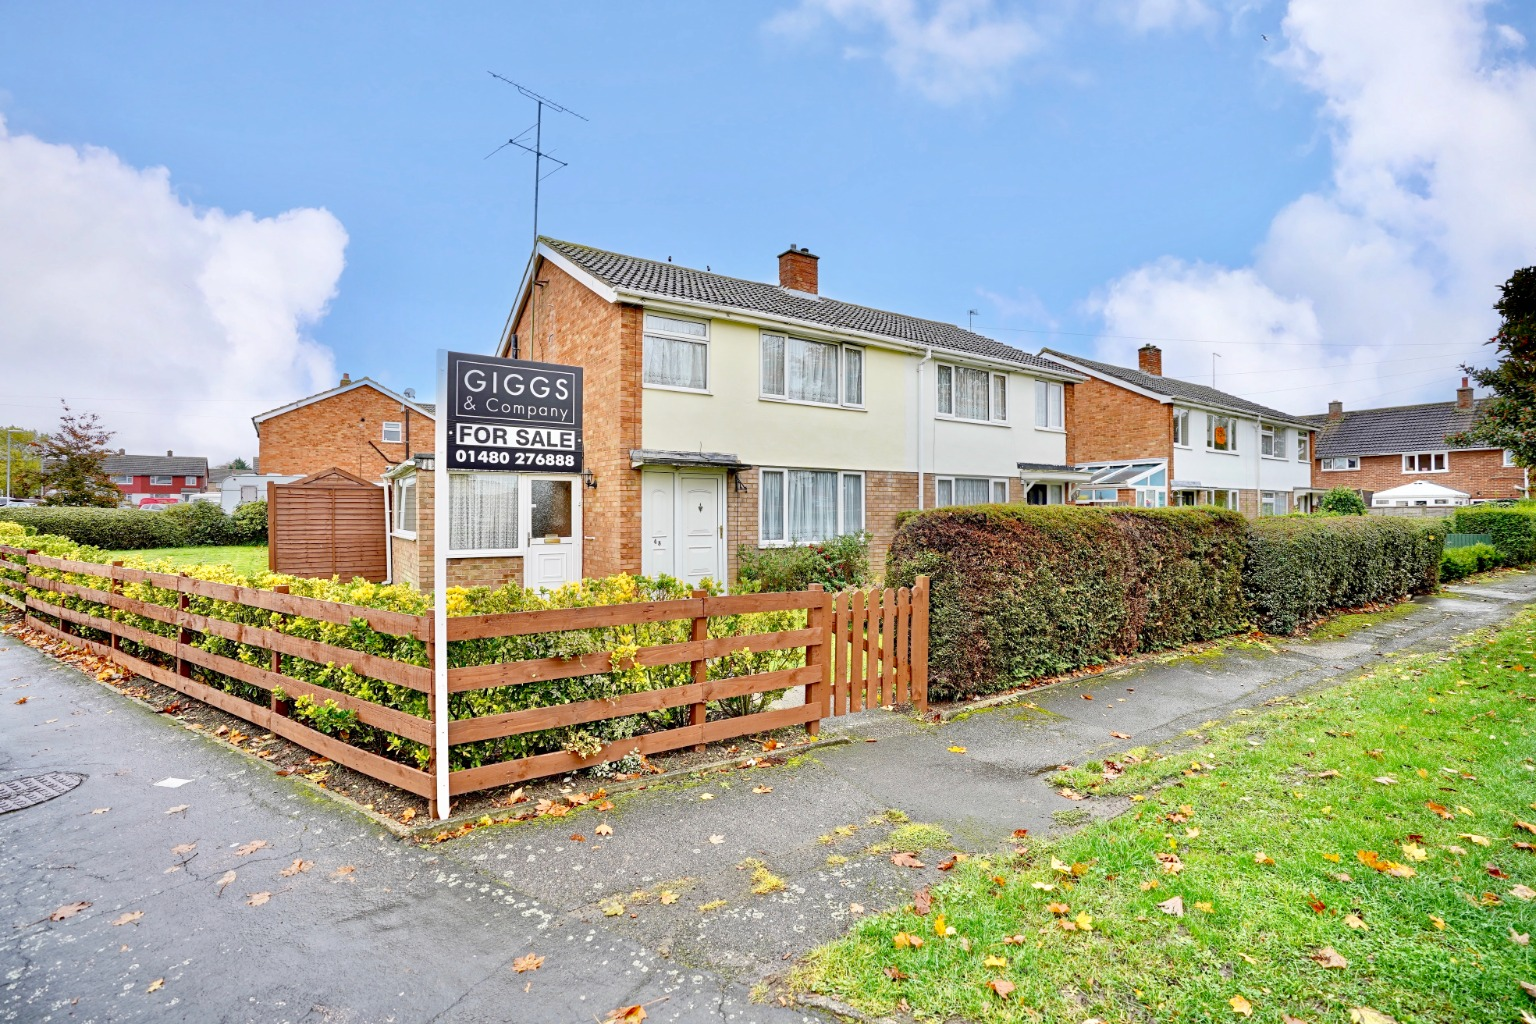 3 bed semi-detached house for sale in Princes Drive, St. Neots - Property Image 1